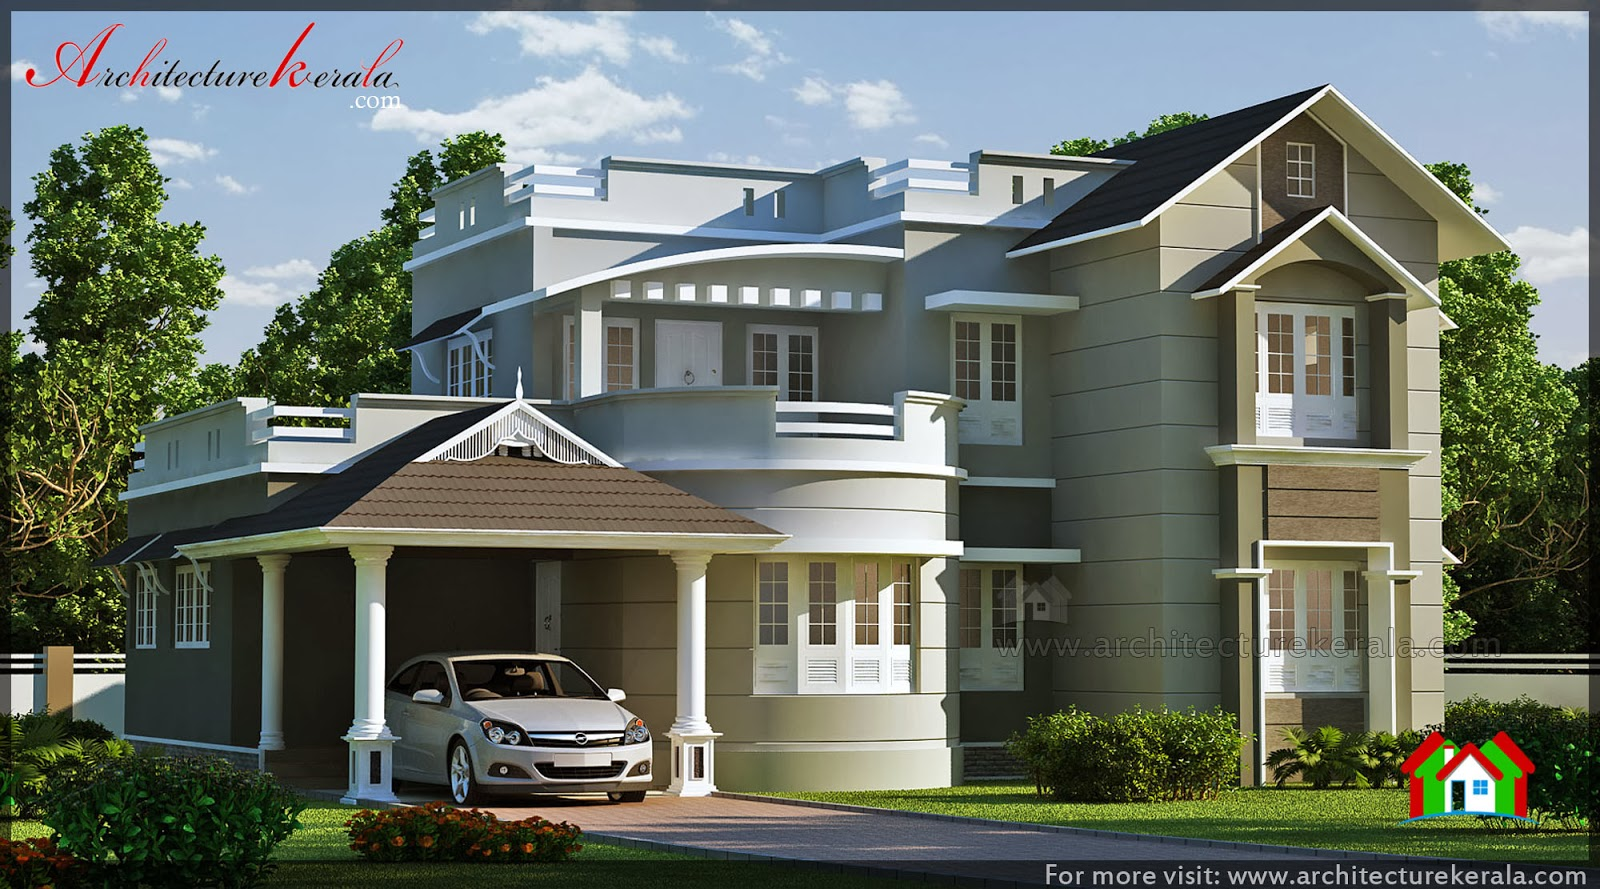 Good looking house design architecture kerala for Good house plans and designs